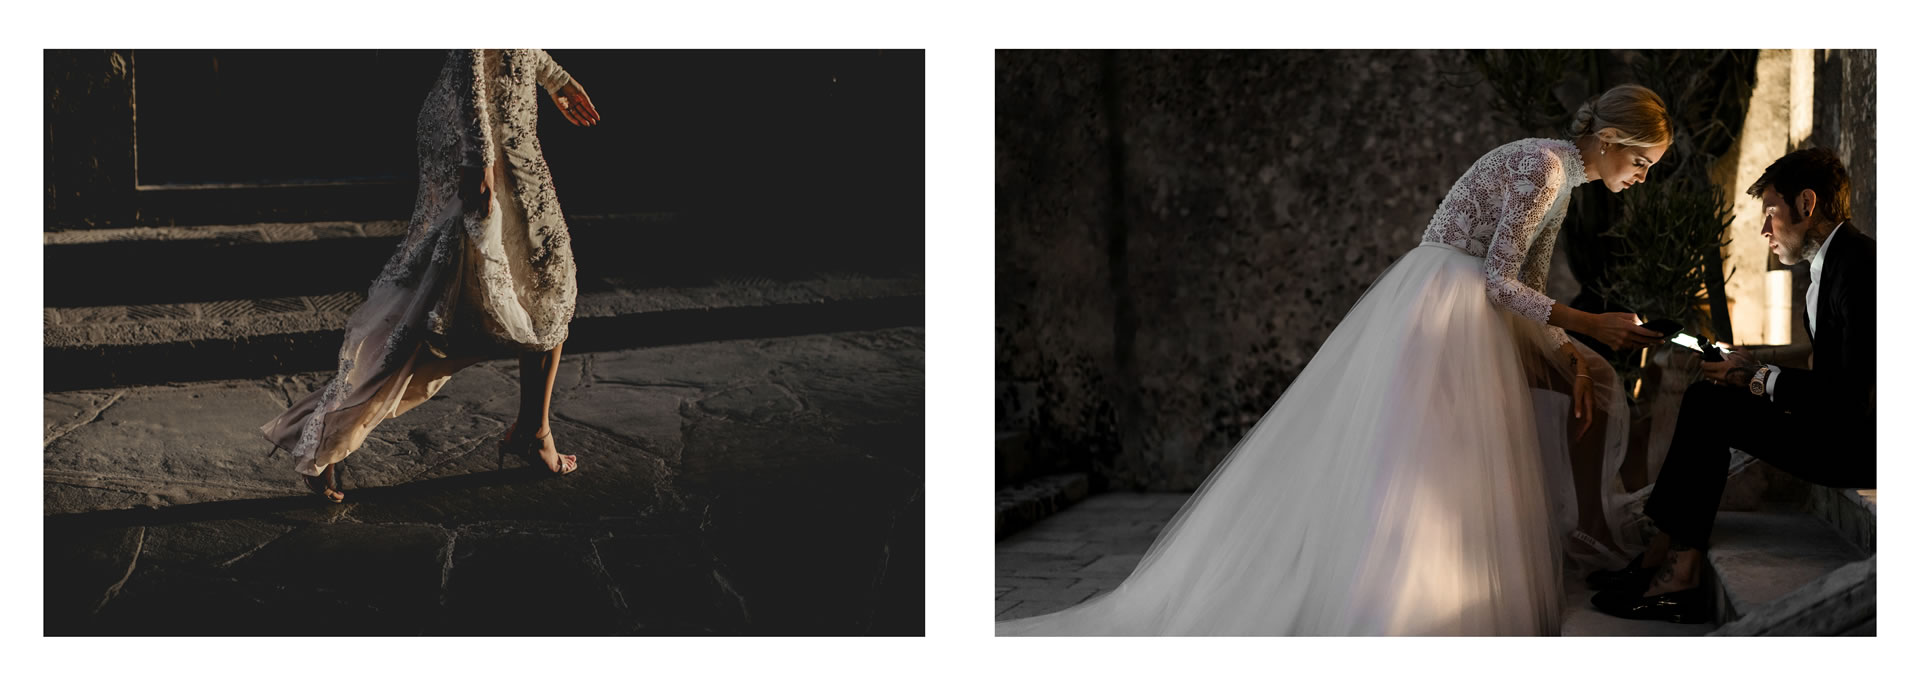 - 40 :: BEST OF 2018 WEDDING: A COLLECTION TO TELL ONE YEAR STORY :: Luxury wedding photography - 39 ::  - 40